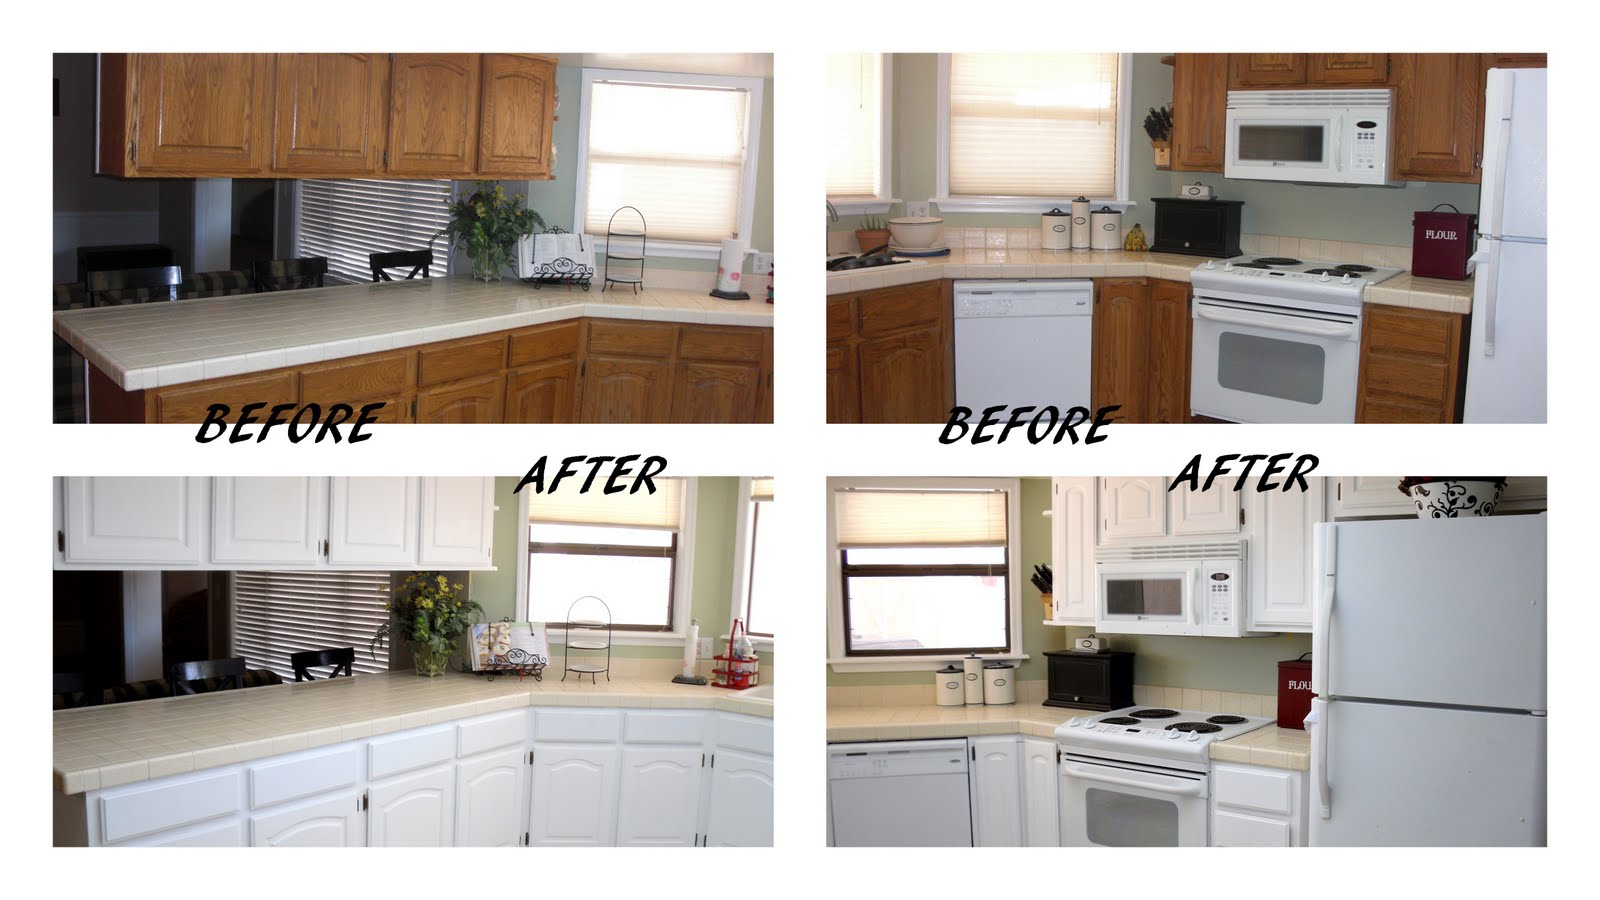 inexpensive kitchen renovations before and after. dark to bright kitchen update: guest inexpensive renovations before and after